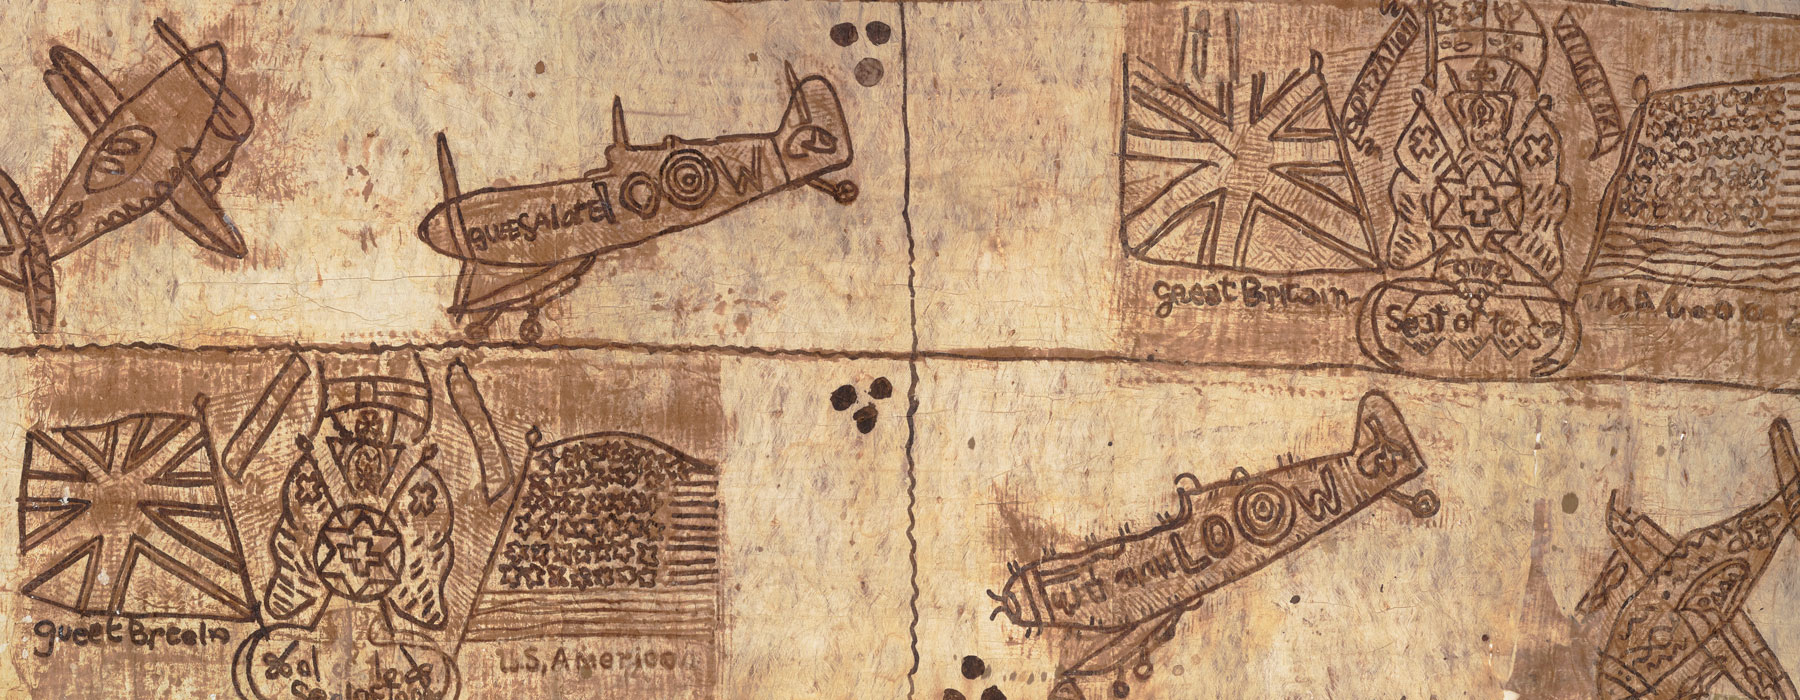 Tapa cloth depicting Spitfires